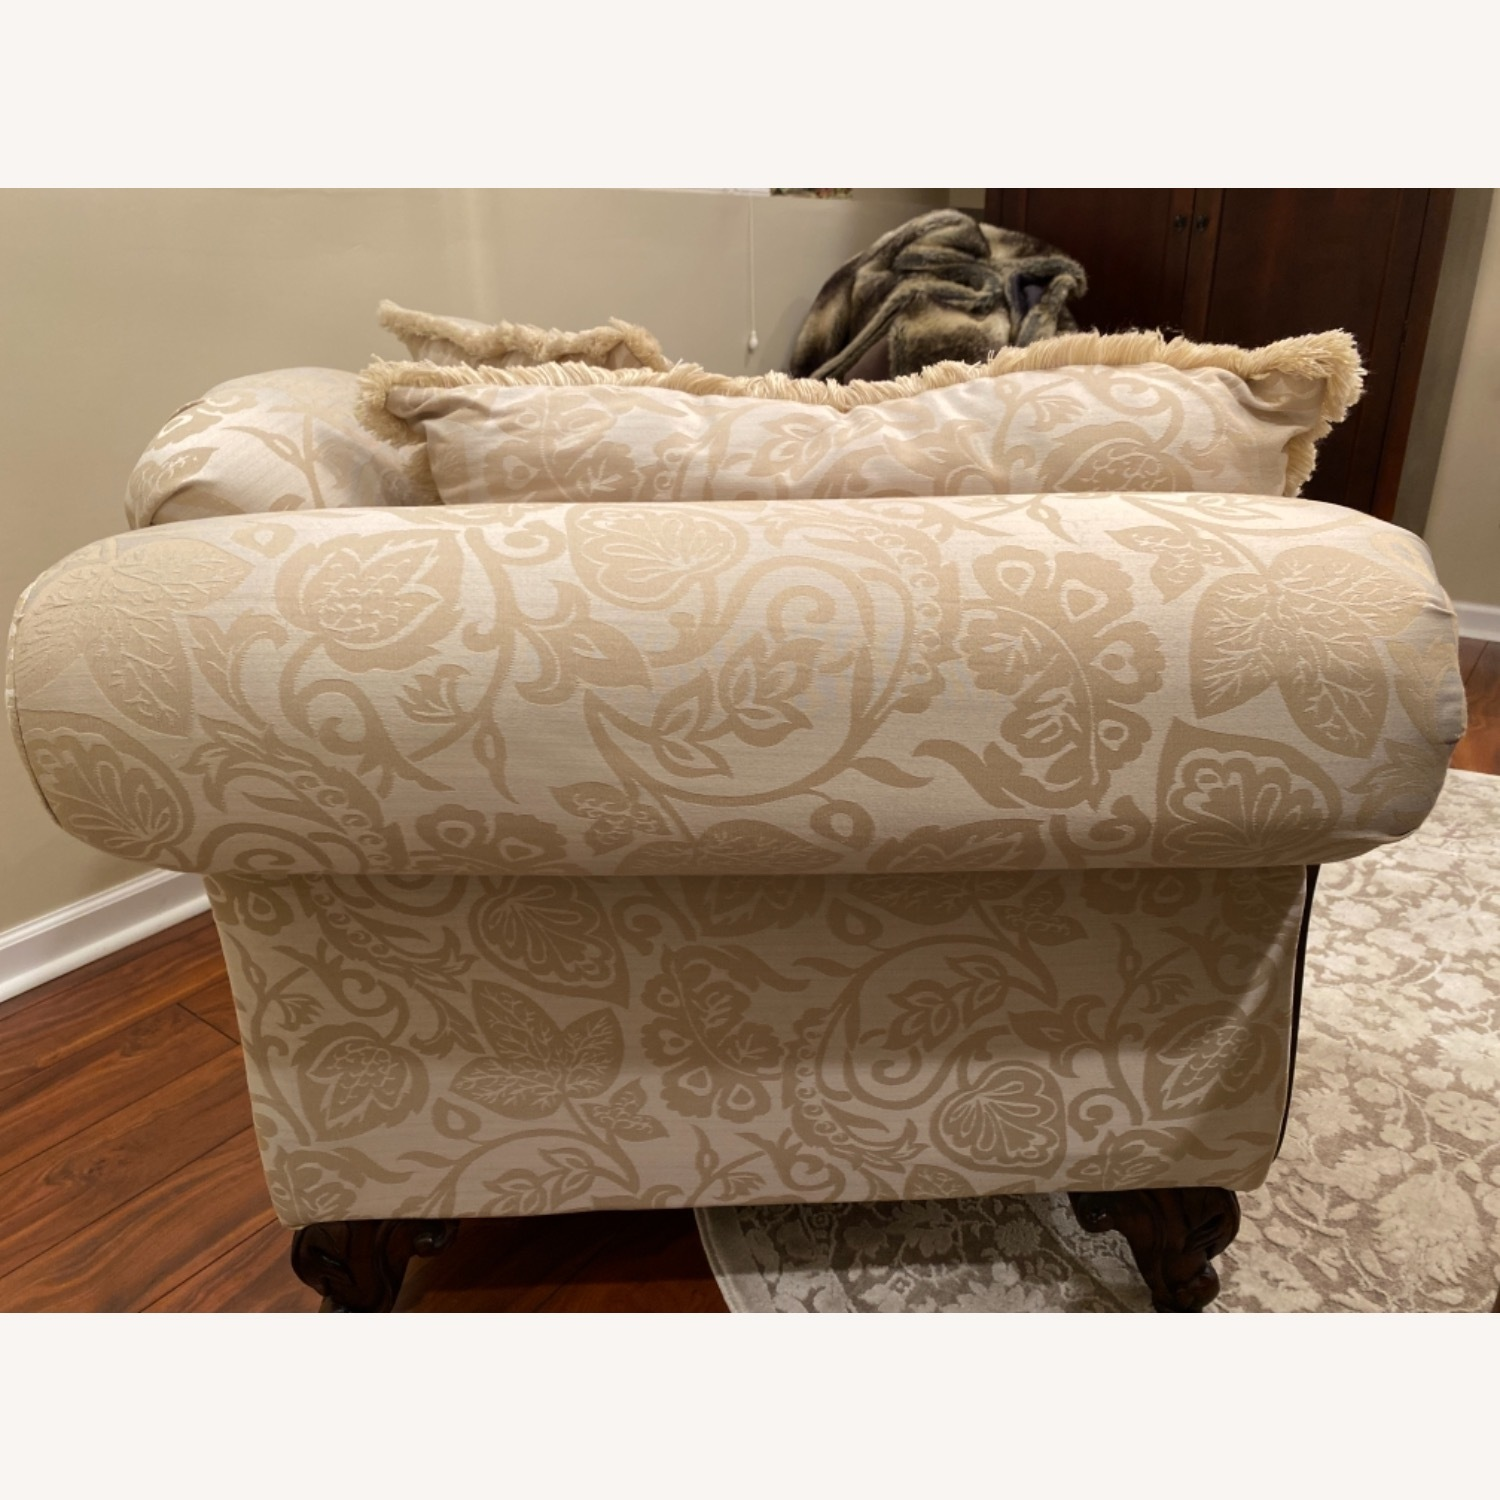 Broyhill Beige/Off White Chaise - image-3